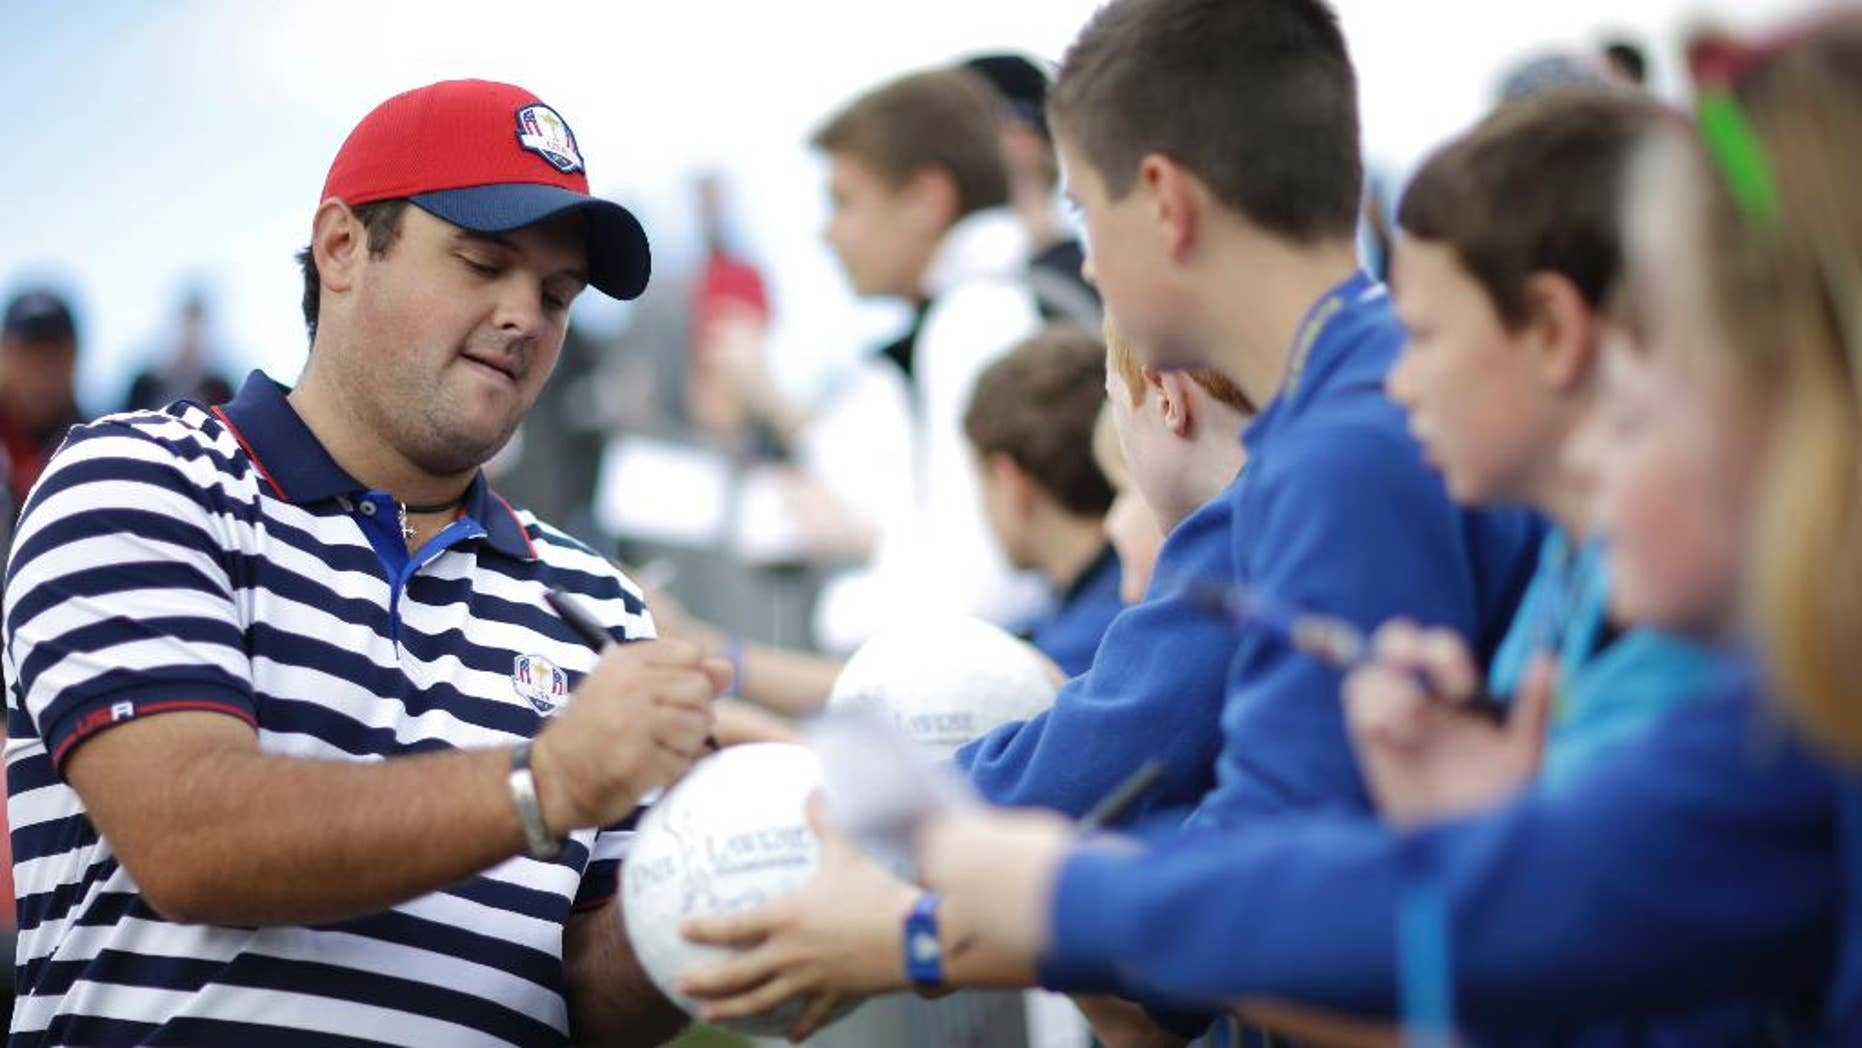 Patrick Reed of the US signs autographs for fans on his way to the 9th tee box during a practice round ahead of the Ryder Cup golf tournament, at Gleneagles, Scotland, Wednesday, Sept. 24, 2014. (AP Photo/Matt Dunham)